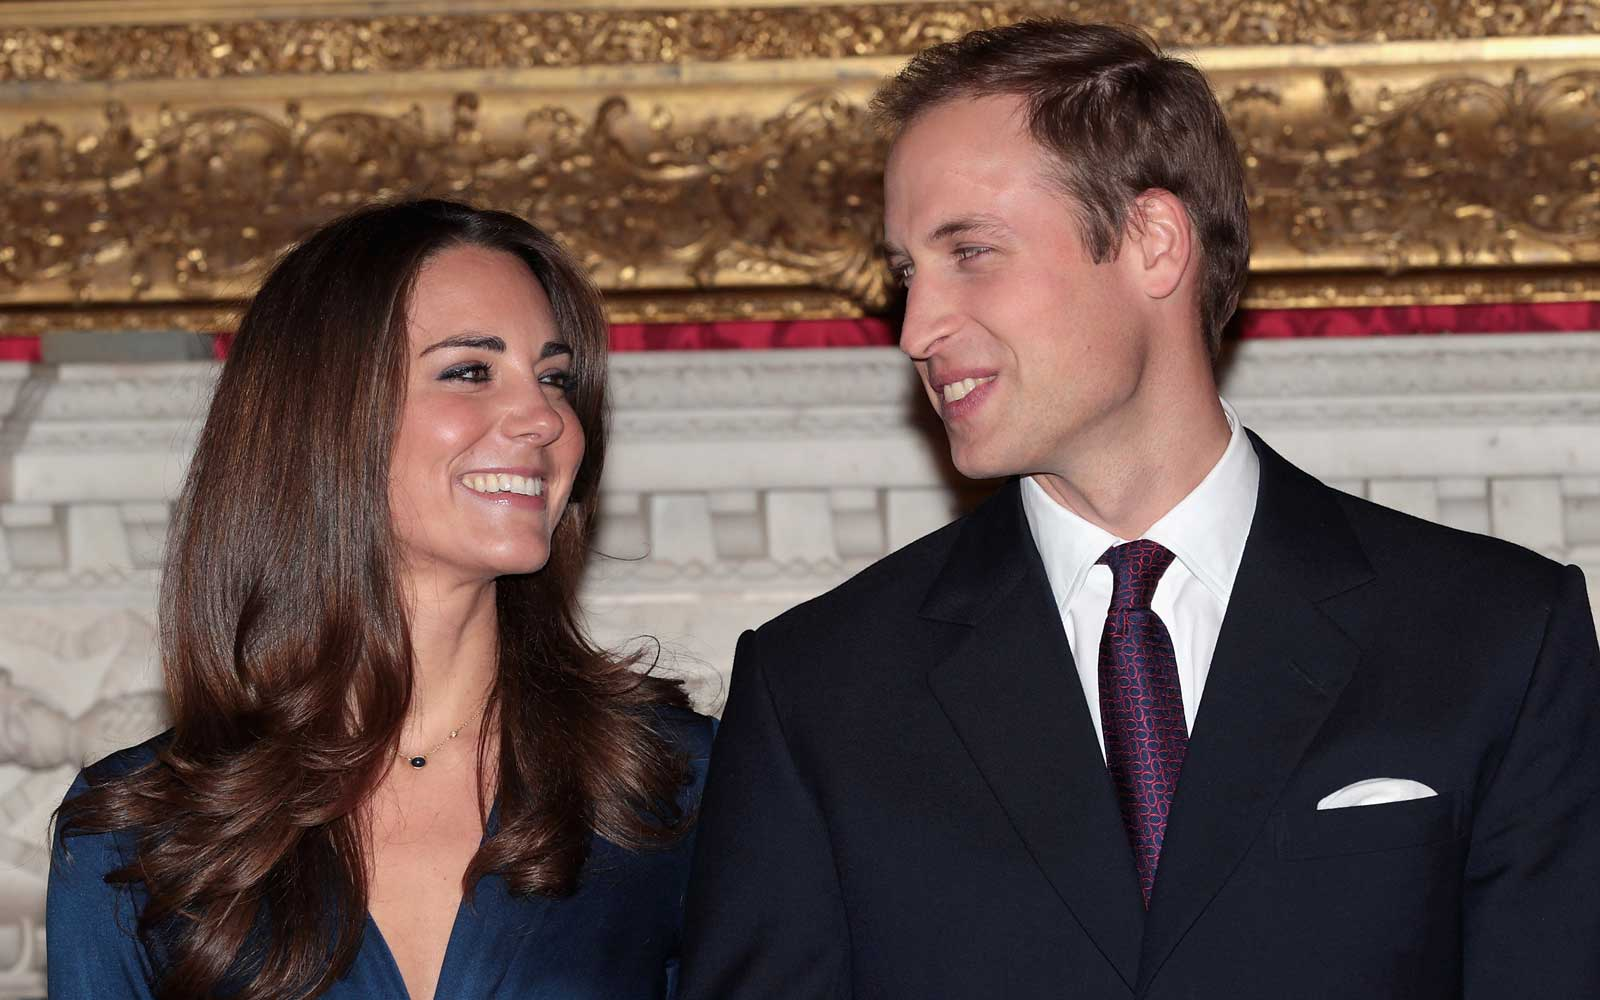 Kate Middleton and Prince William Once Broke Up After a Family Holiday Gone Wrong